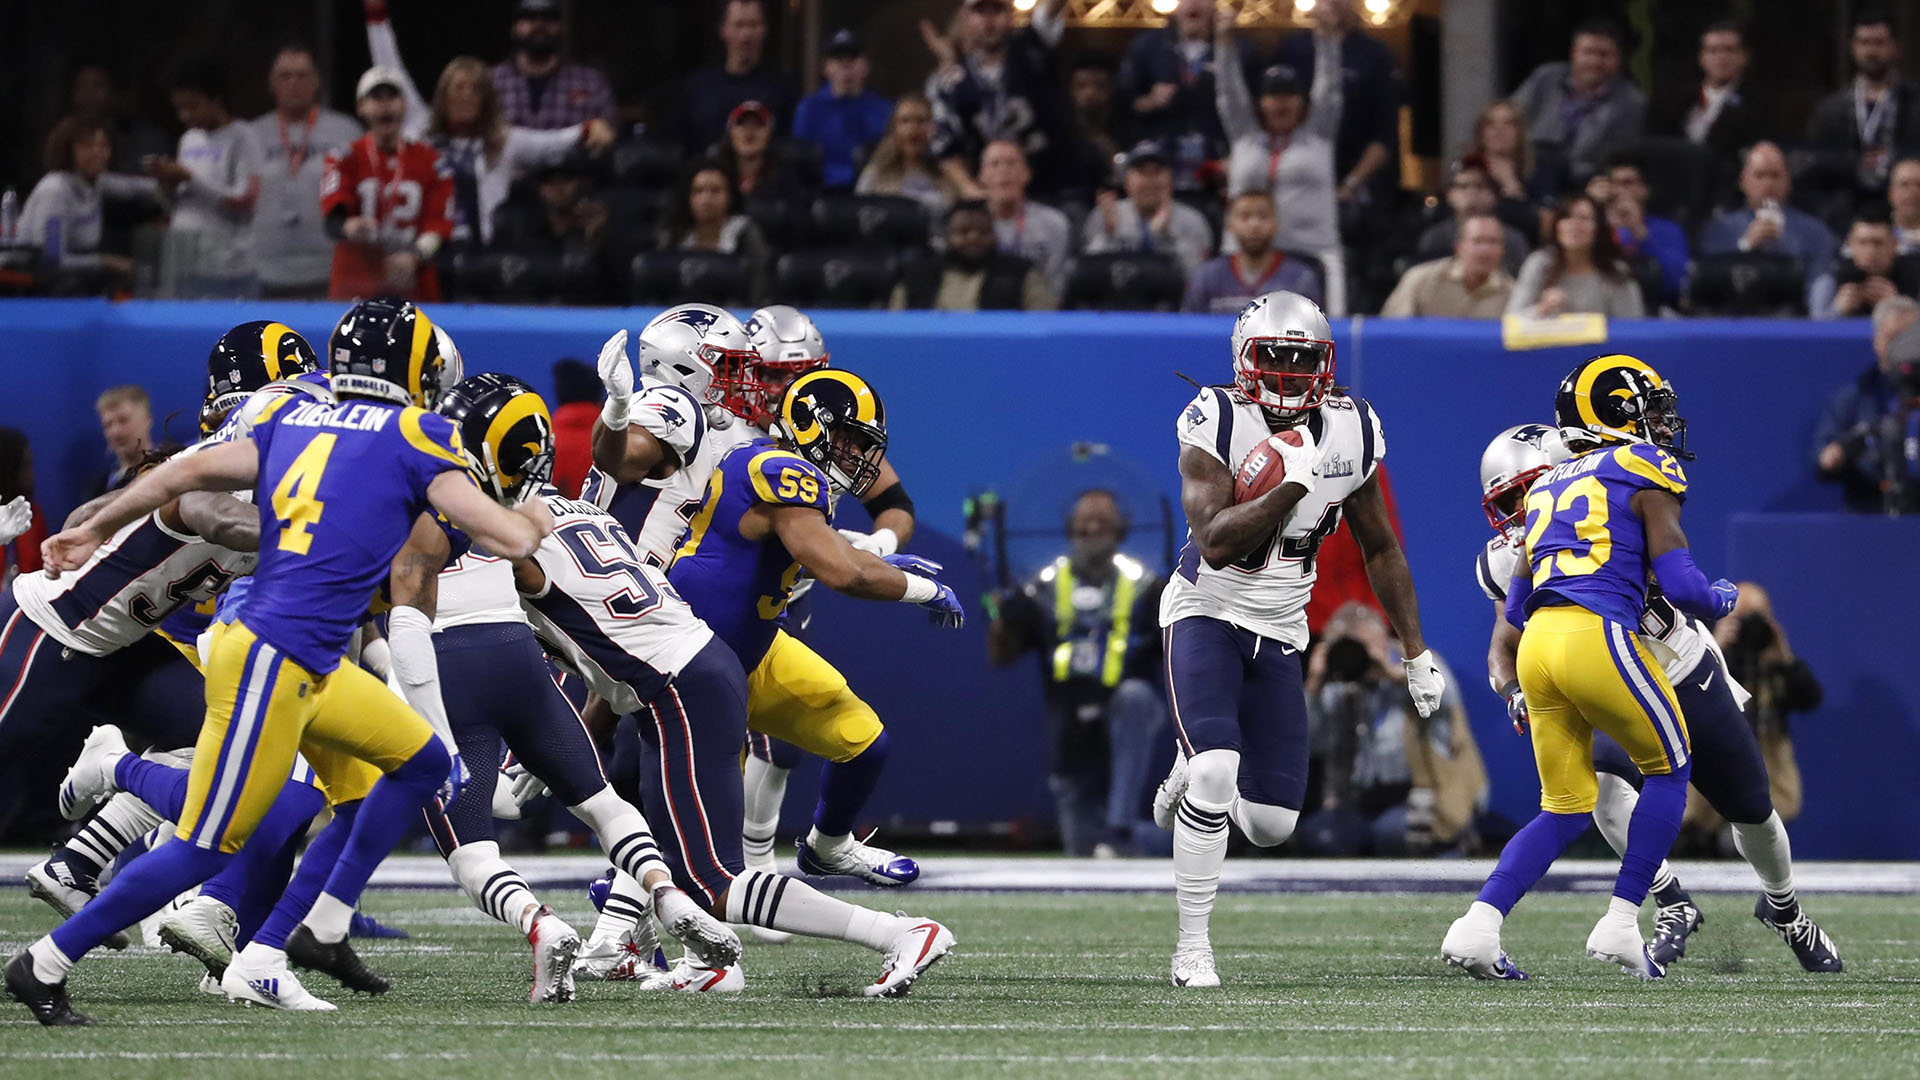 New England Patriots y Los Angeles Rams se enfrentaron en el Super Bowl LIII